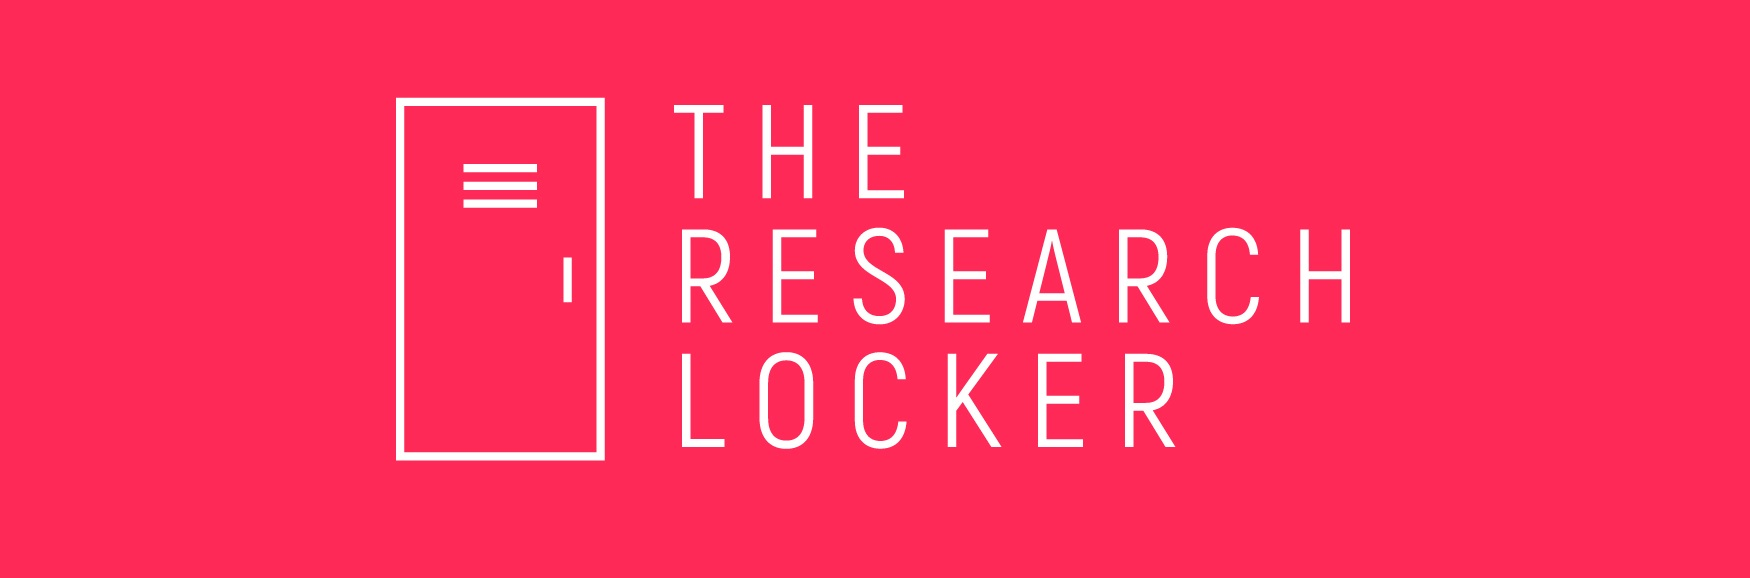 The research locker banner